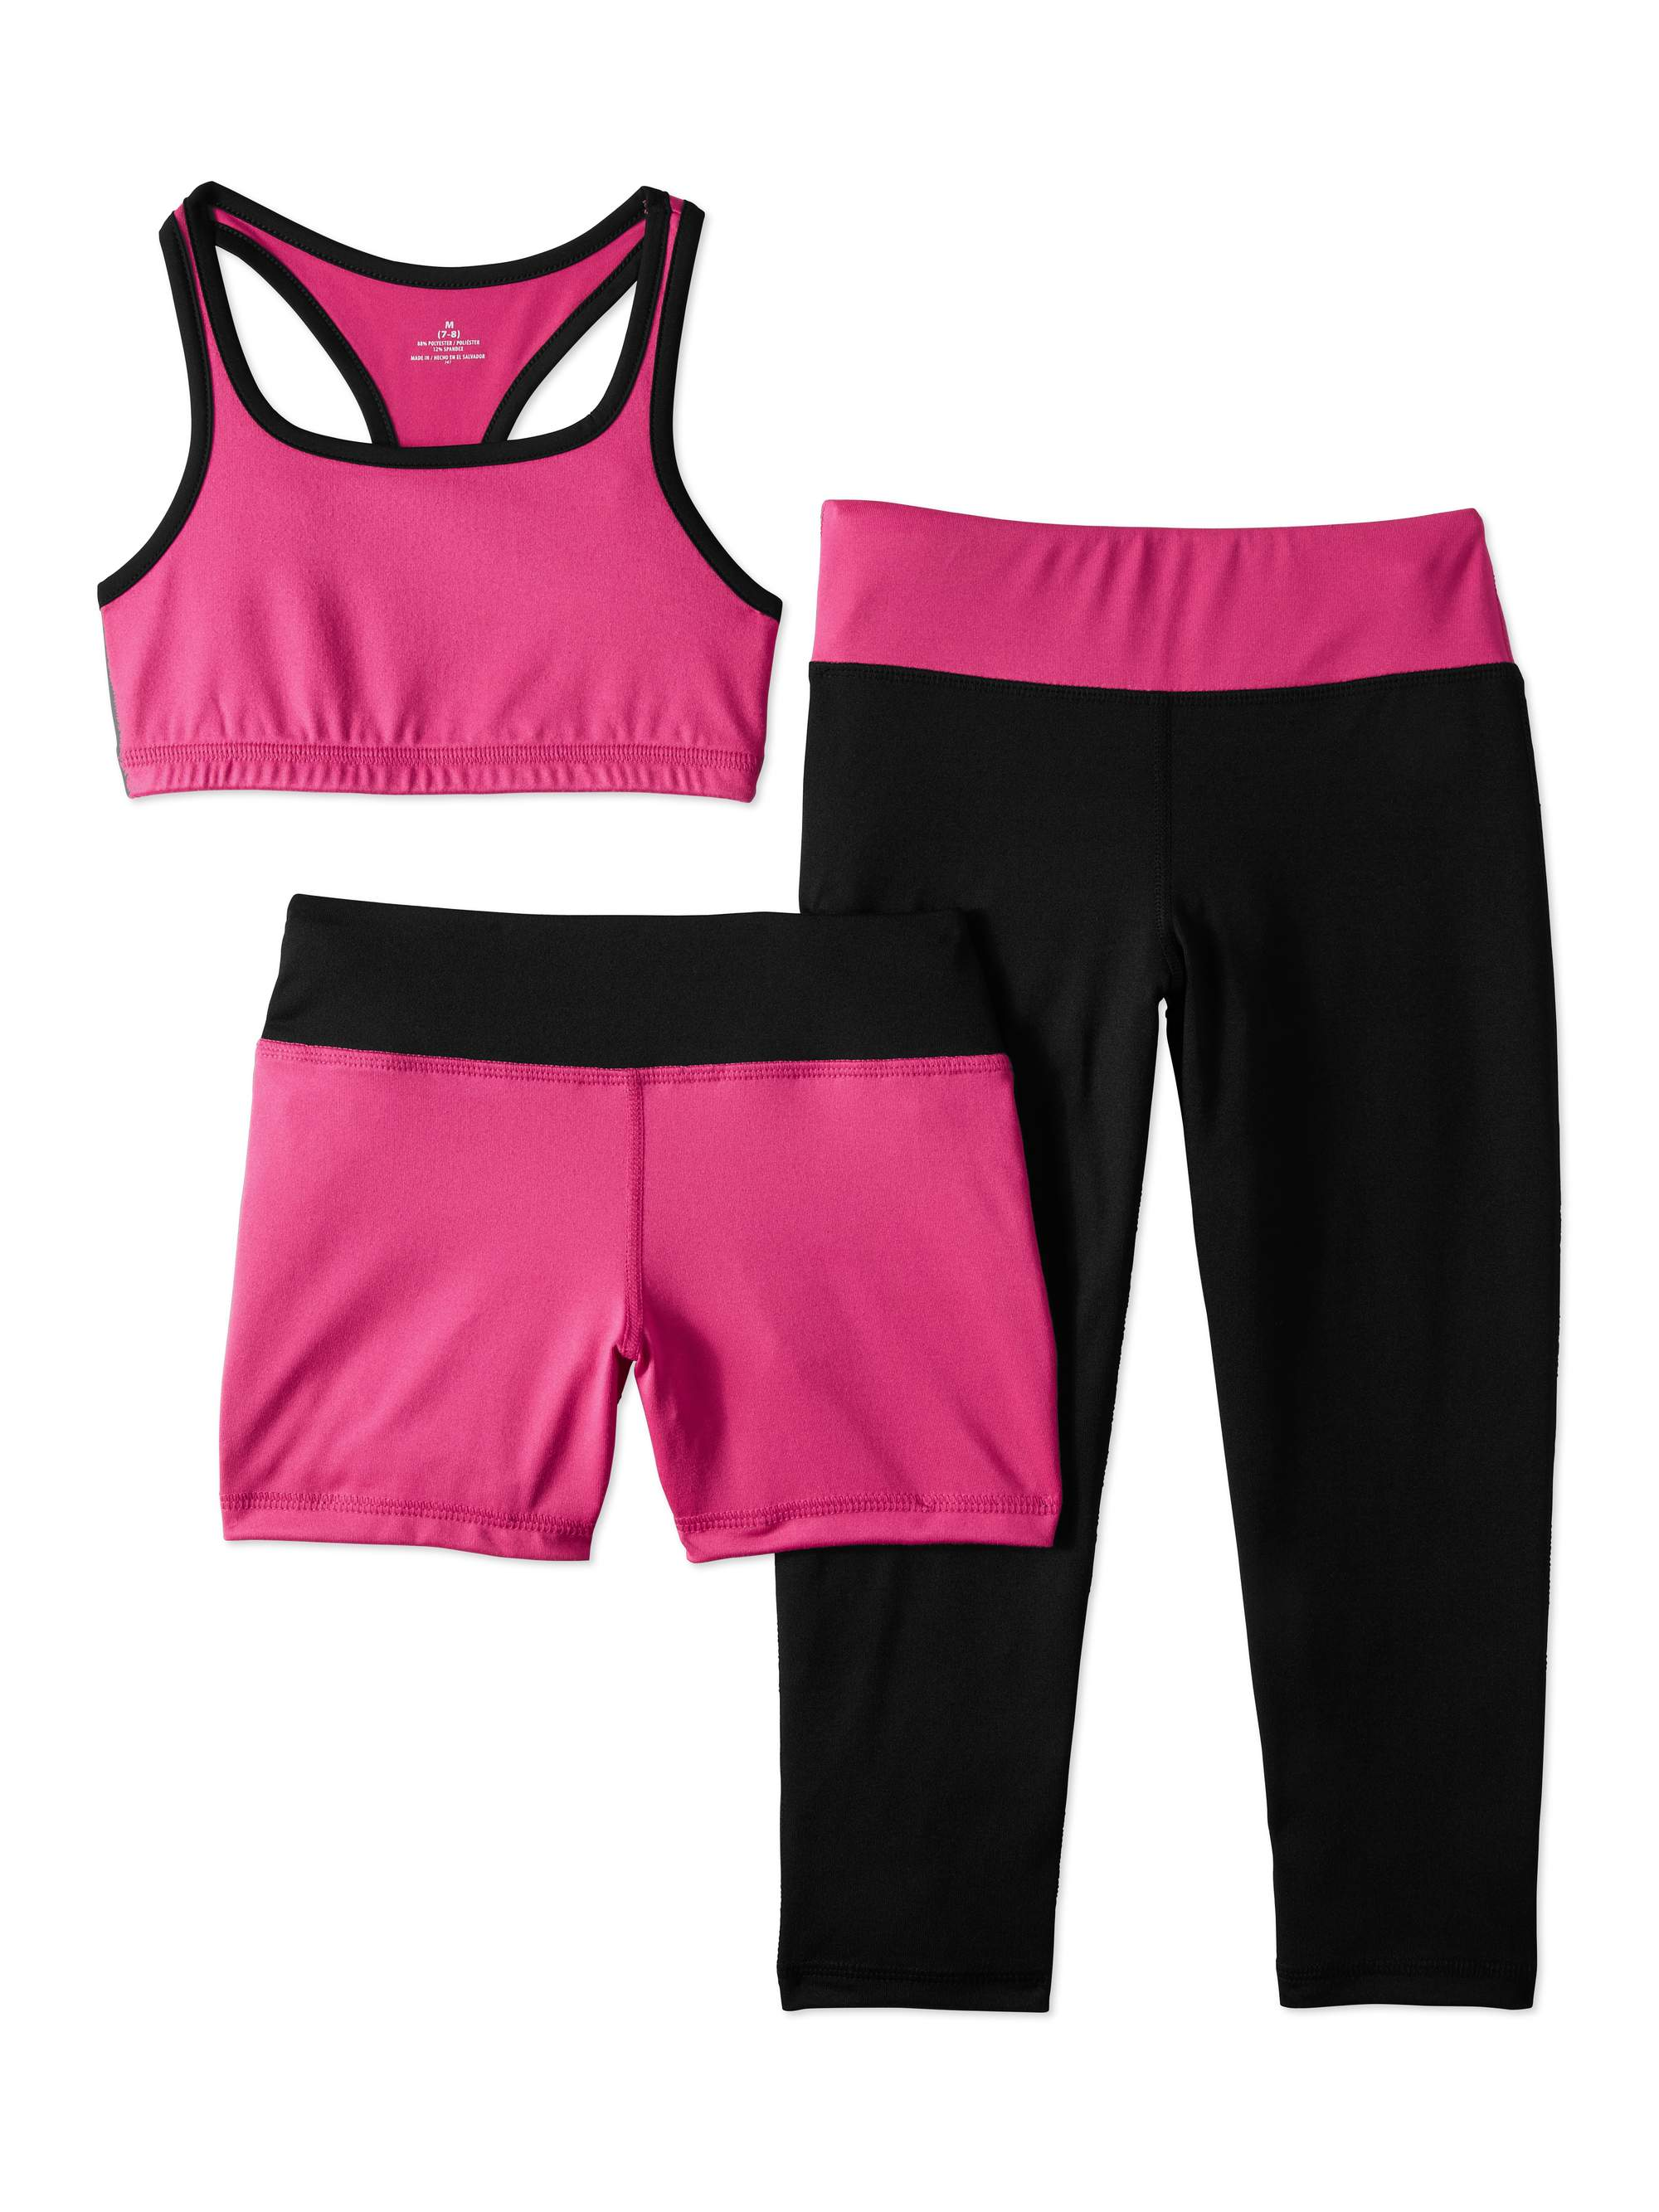 Girls' Performance Sports Bra, Bike Short, And Capri Legging 3-Piece Active Set